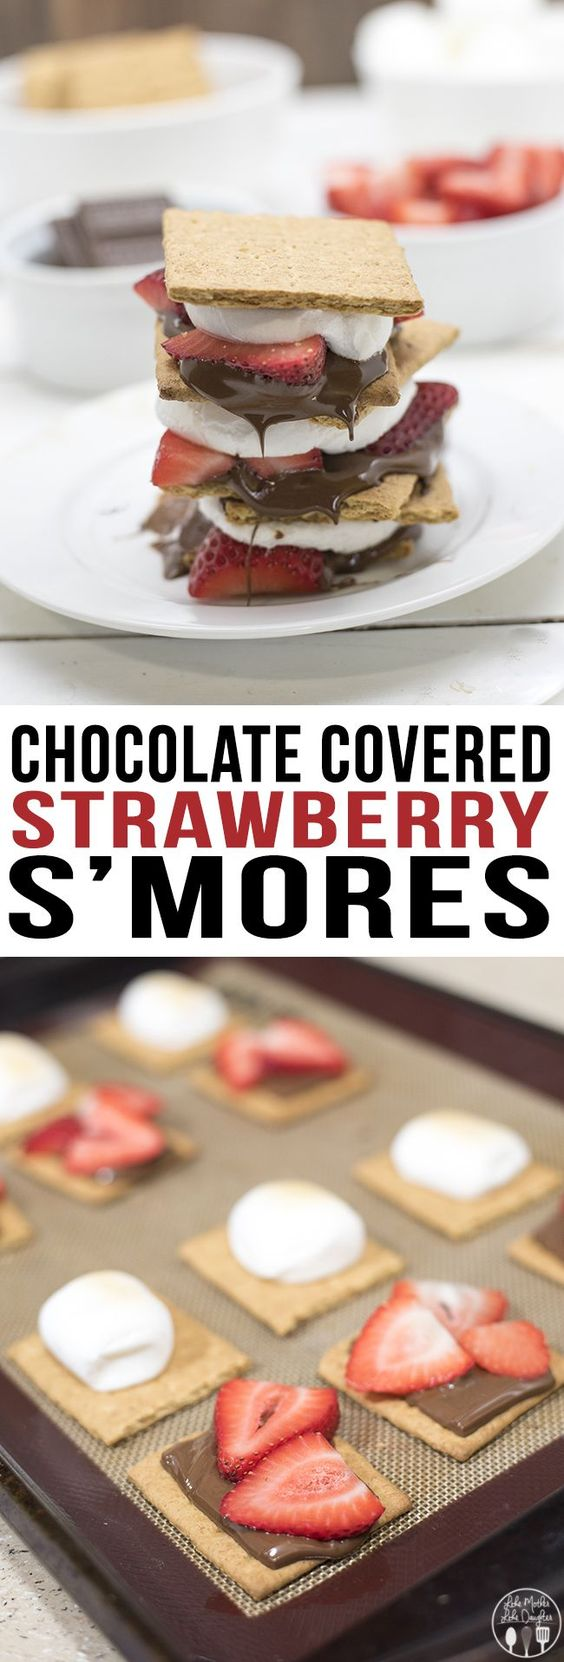 Chocolate Covered Strawberry S'mores | Recipe | Chocolate Covered ...